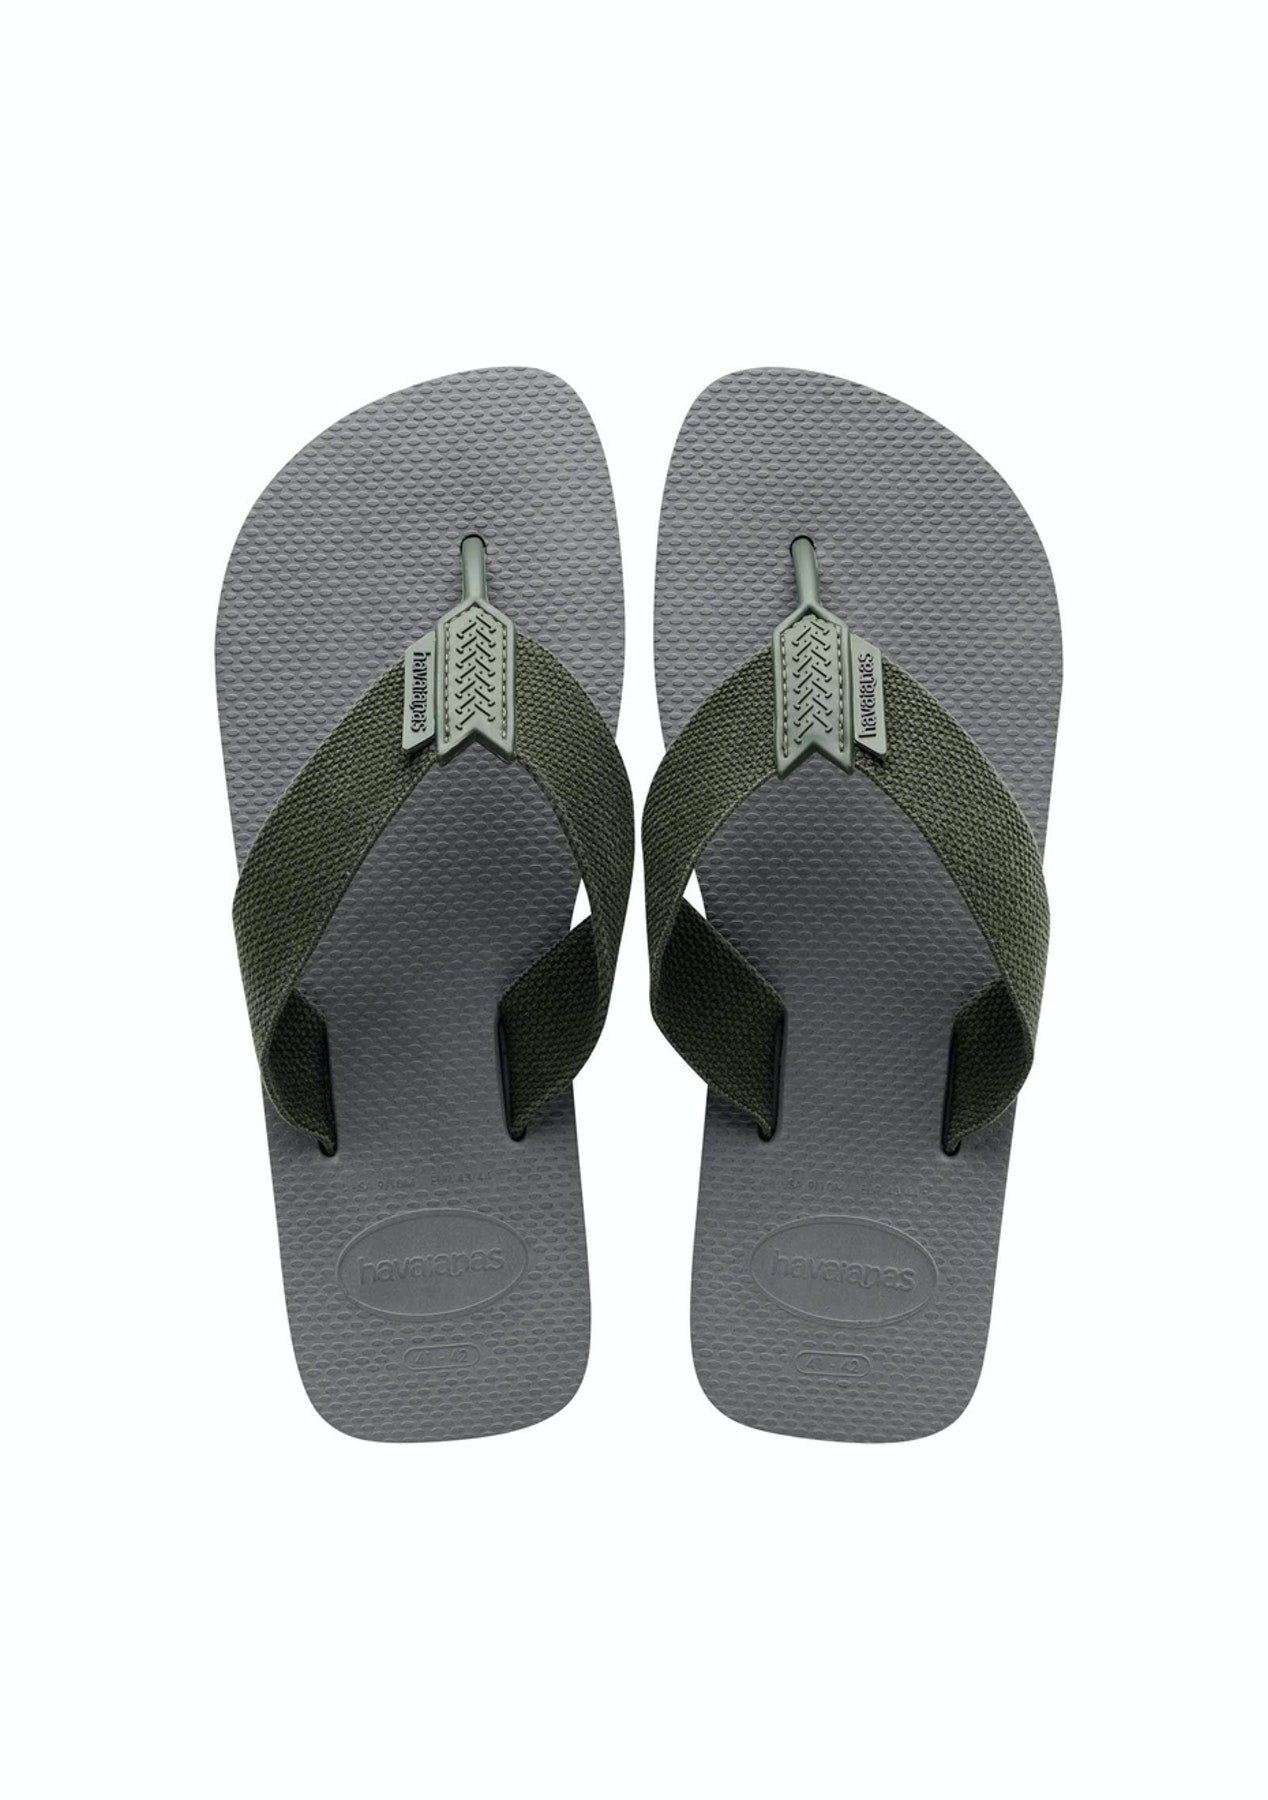 55b75f6bde4f Havaianas - Urban 9444 - Grey Green Olive - Christmas Giftopia - Onceit